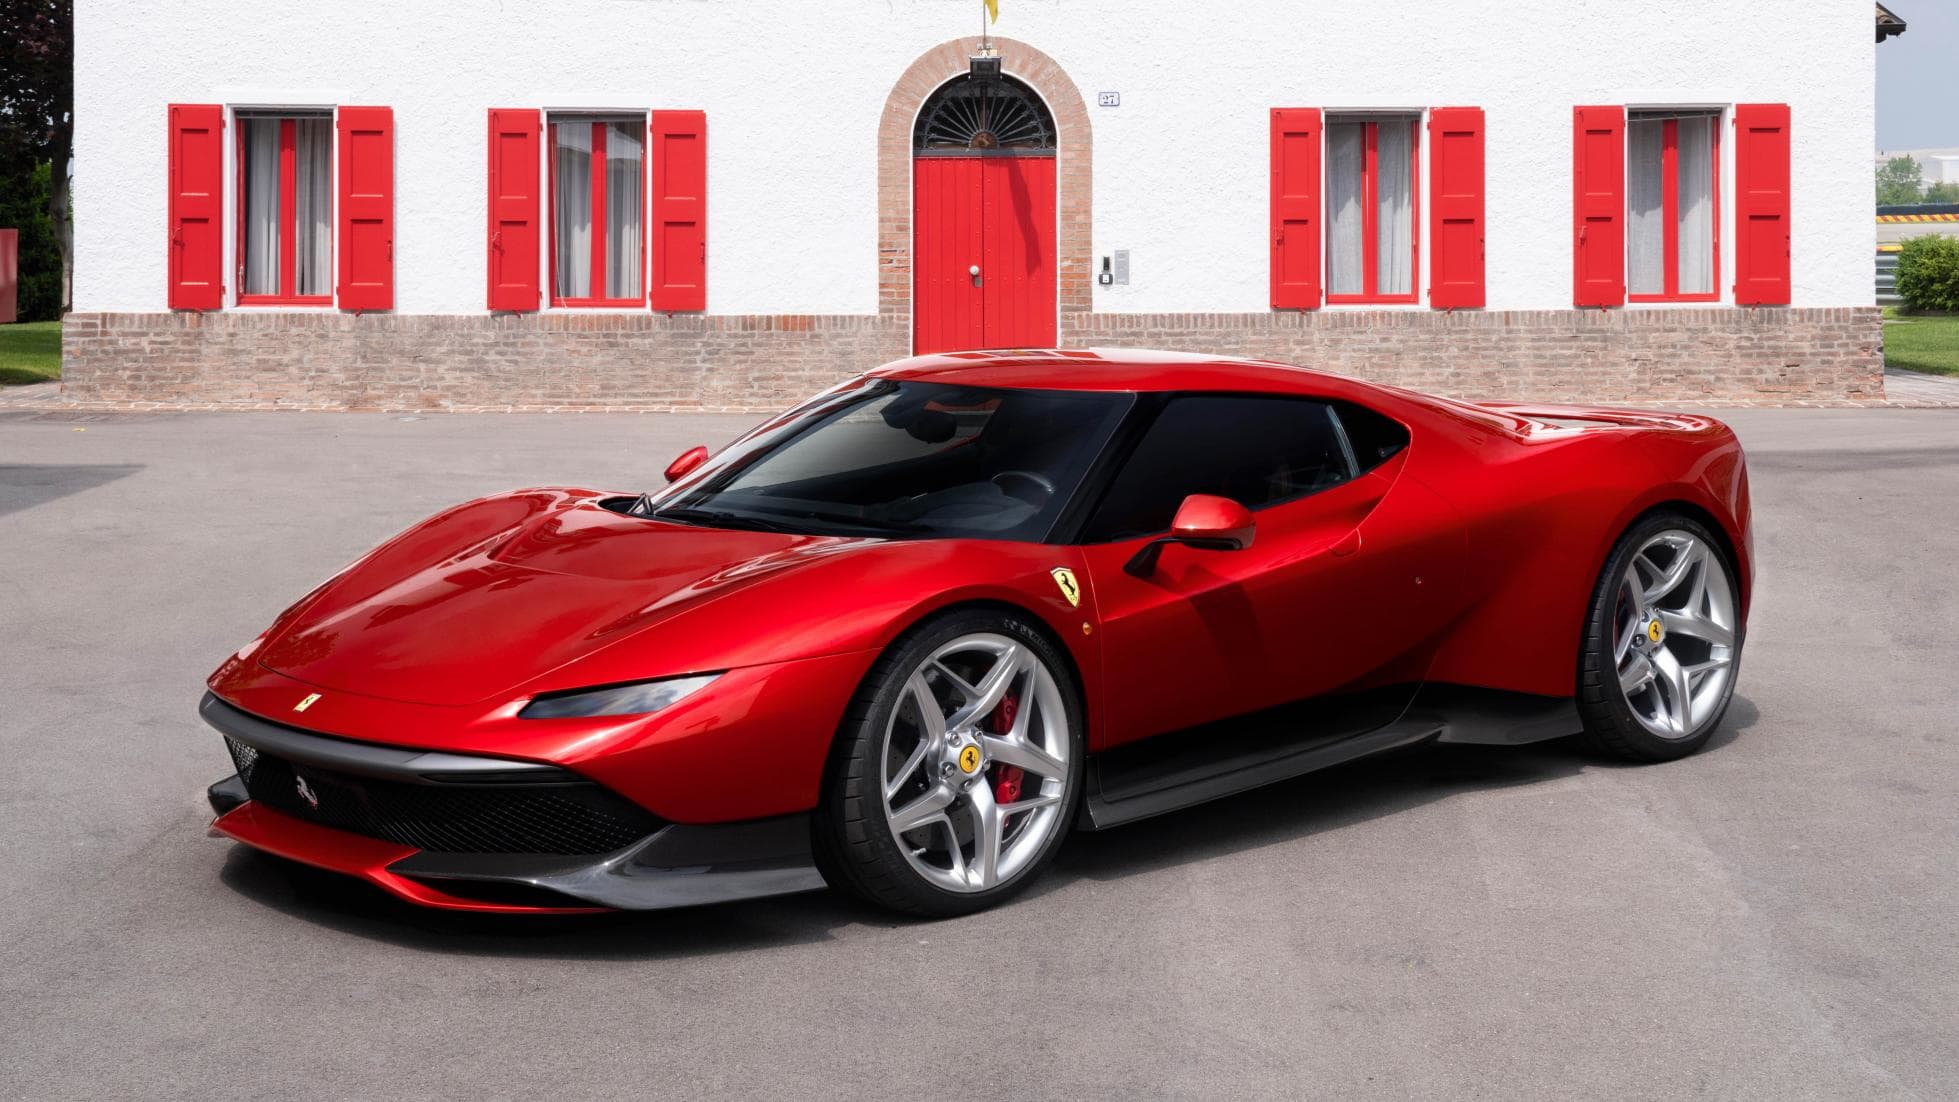 Ferrari has built a 488 GTB-based one-off and it looks absolutely stunning